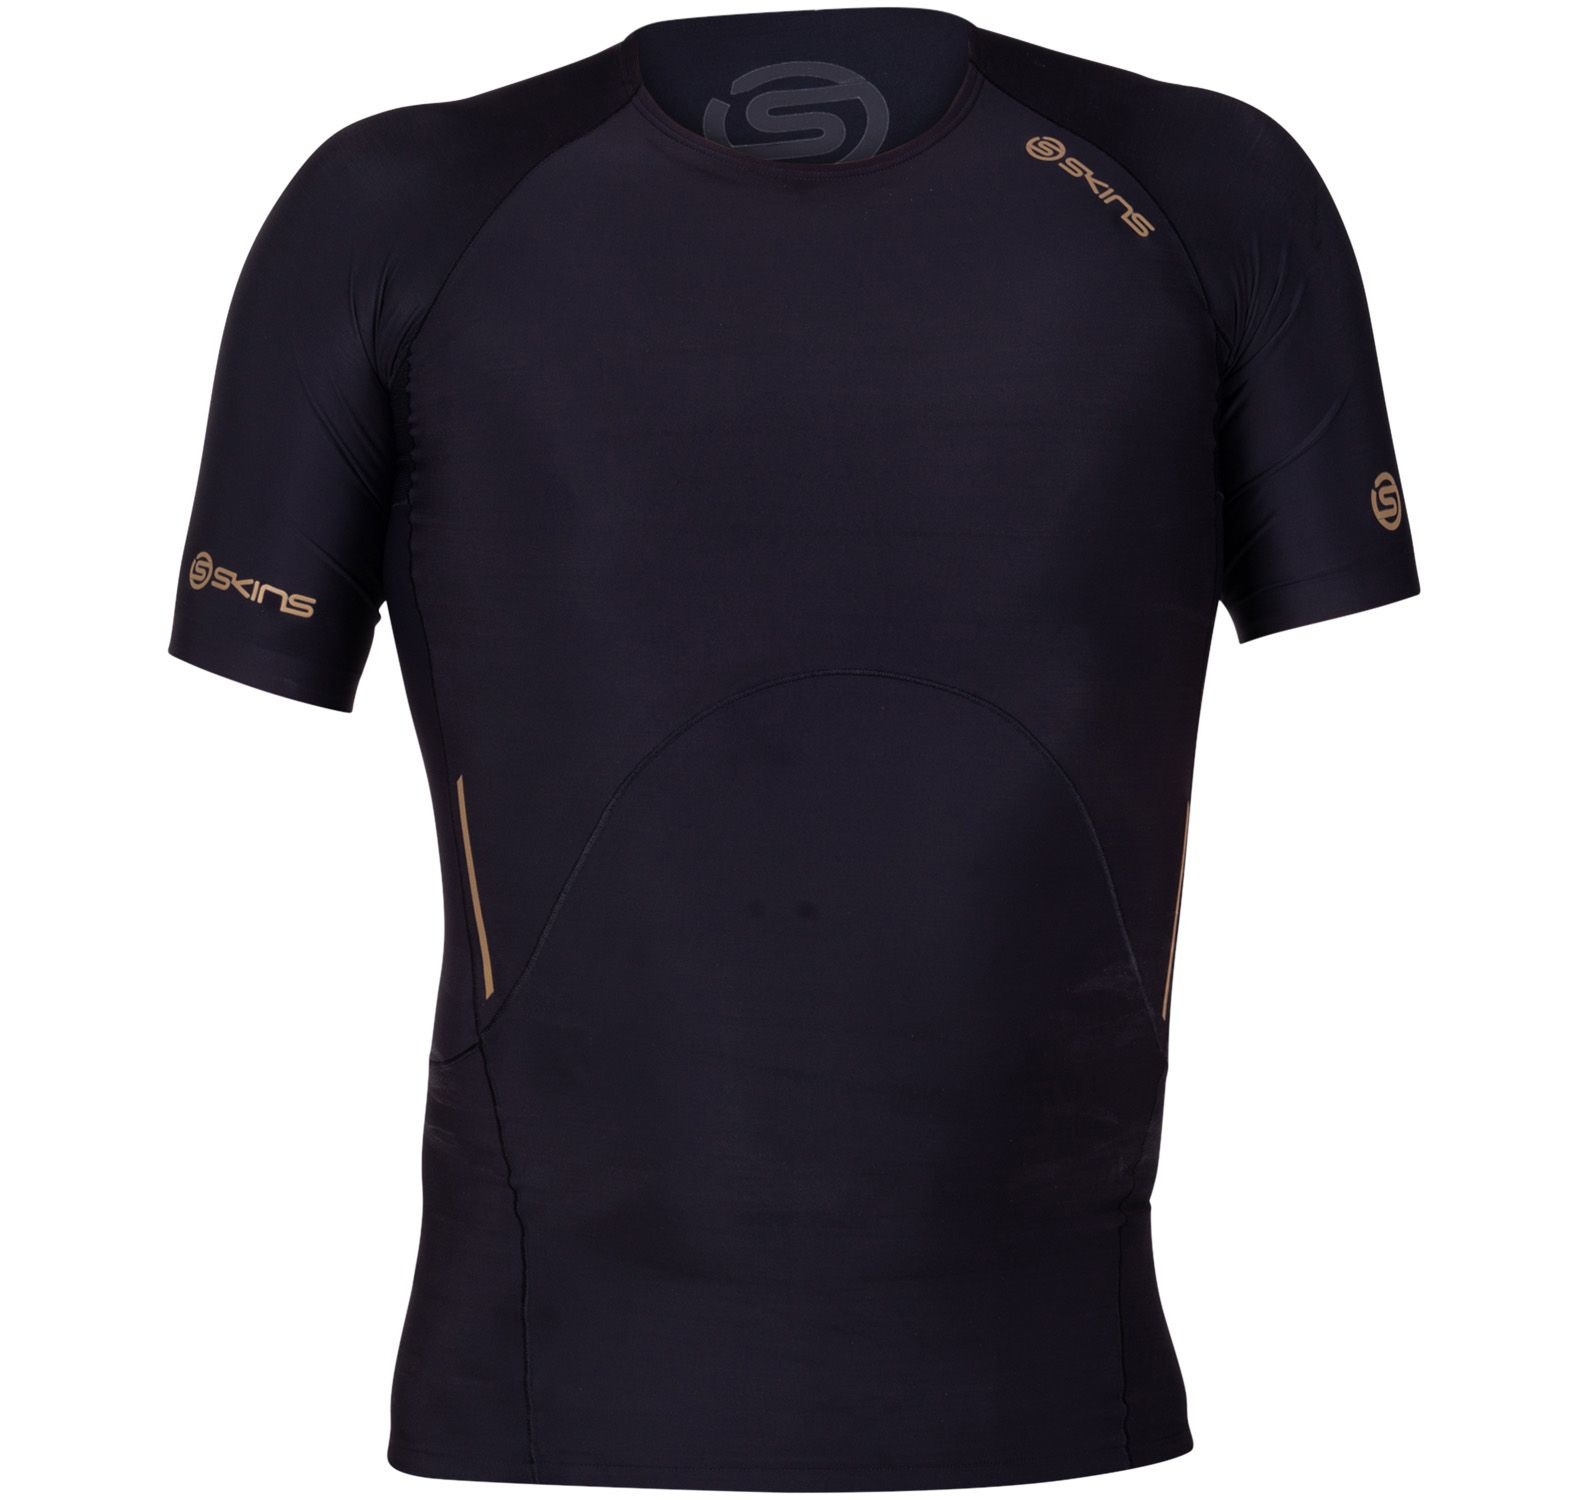 A400 Mens Top Short Sleeve, Black/Gold, L,  Skins